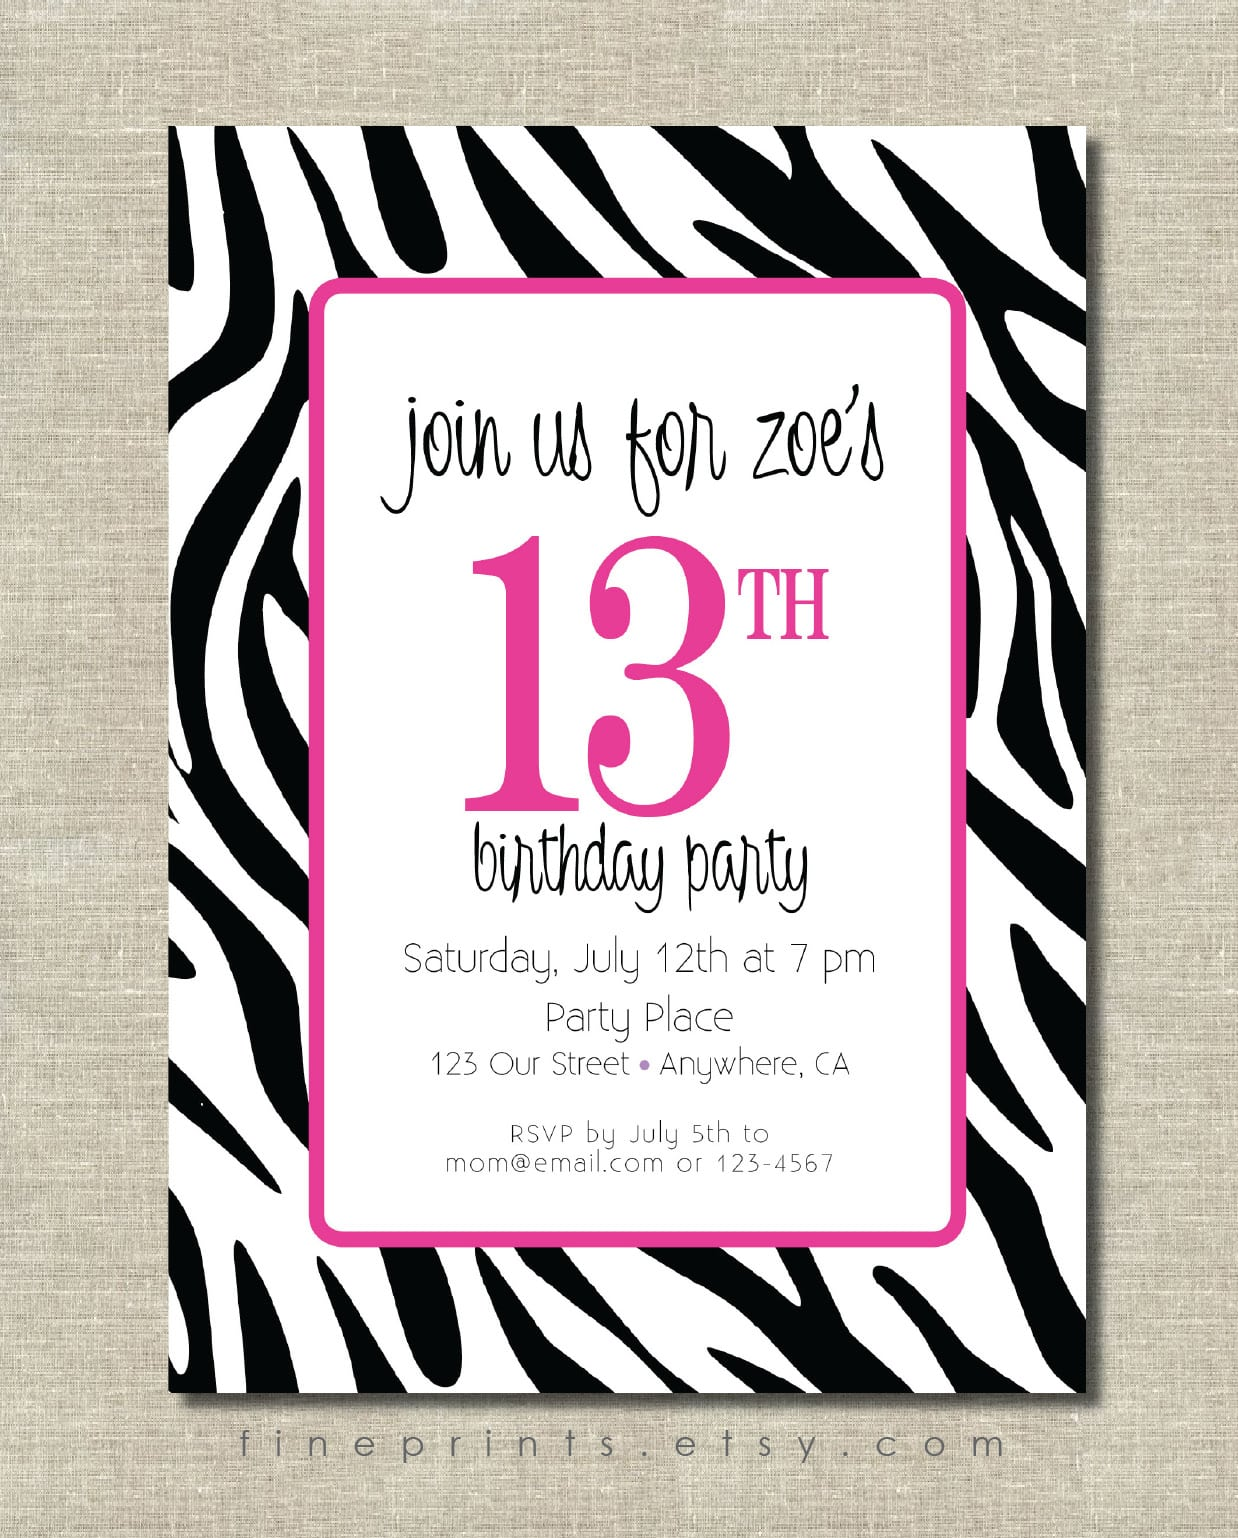 Zebra Birthday Party Invitations